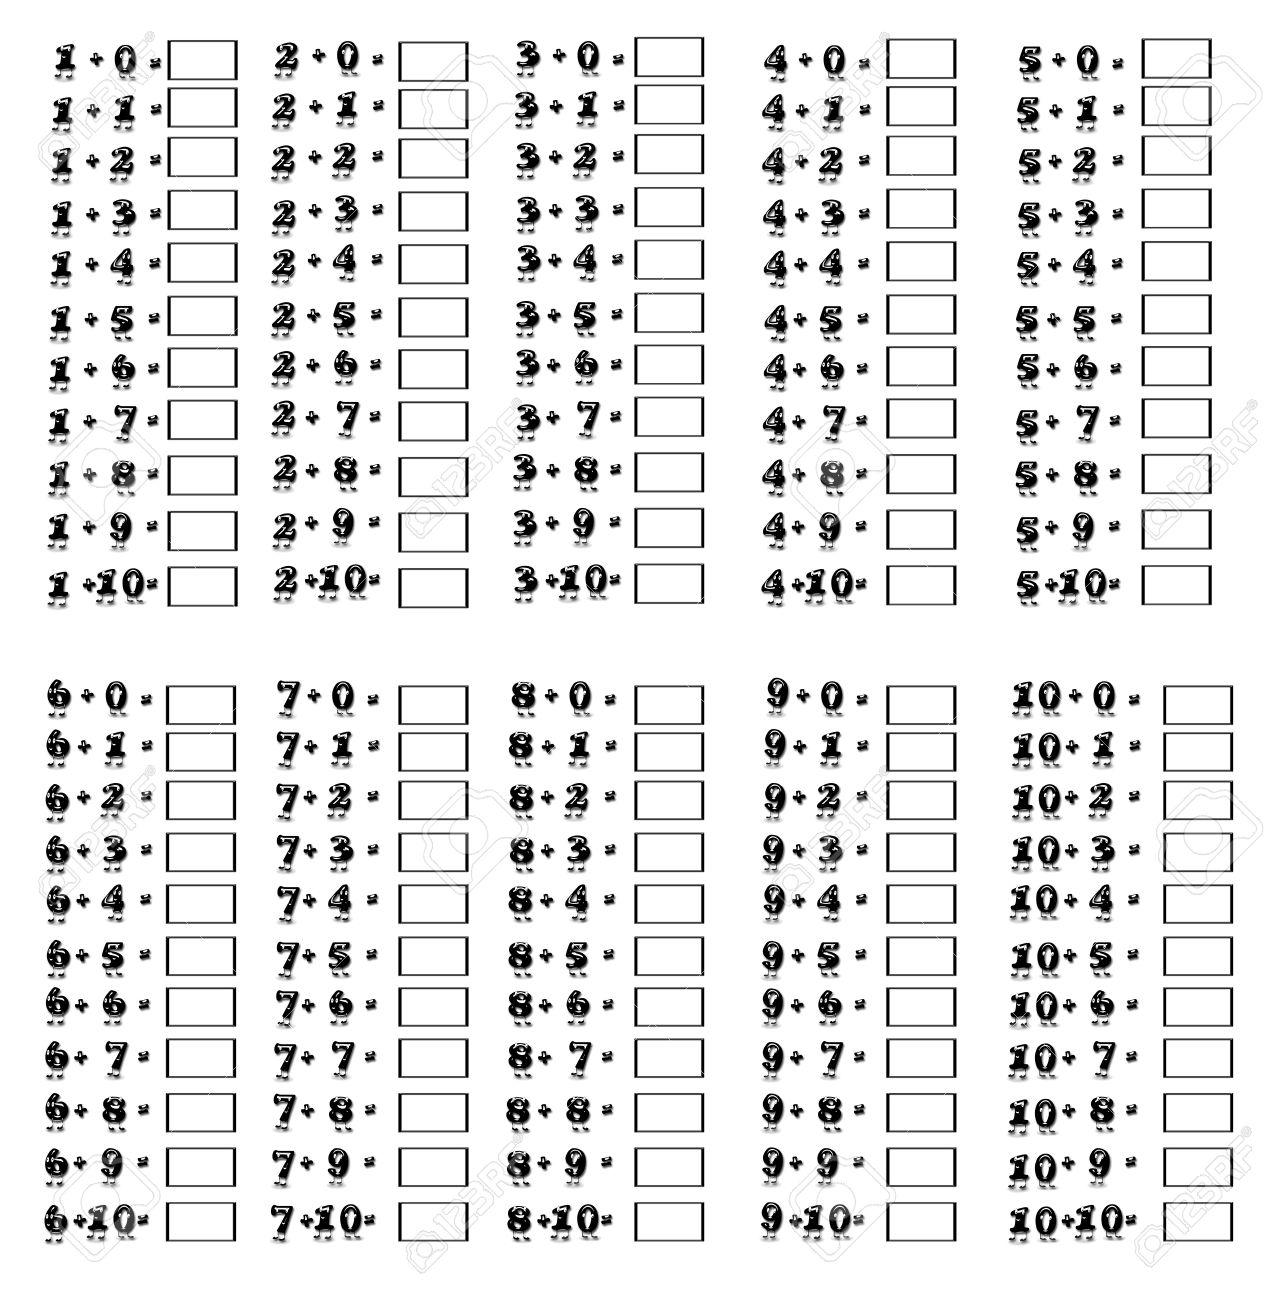 Illustration of addition table on a white background